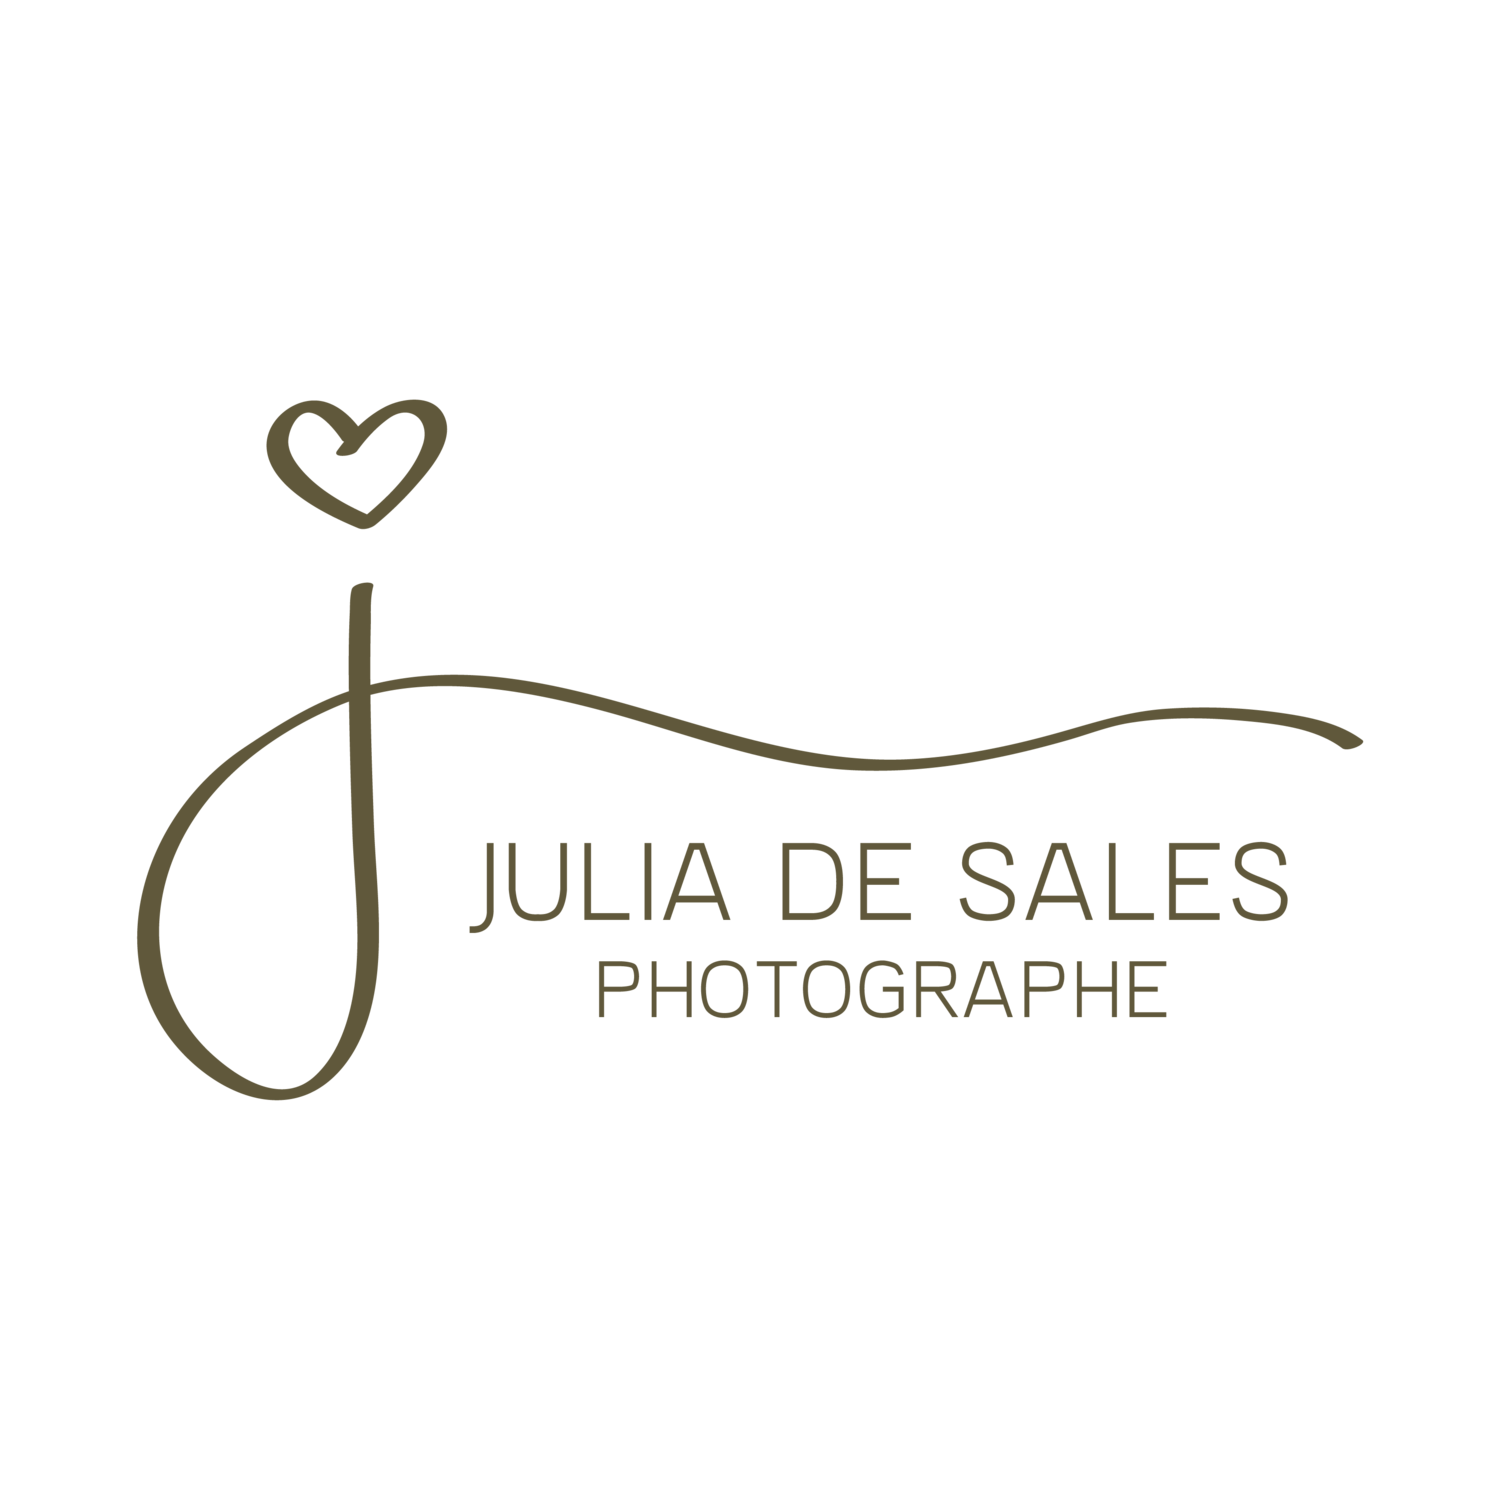 Julia de Sales Photographe